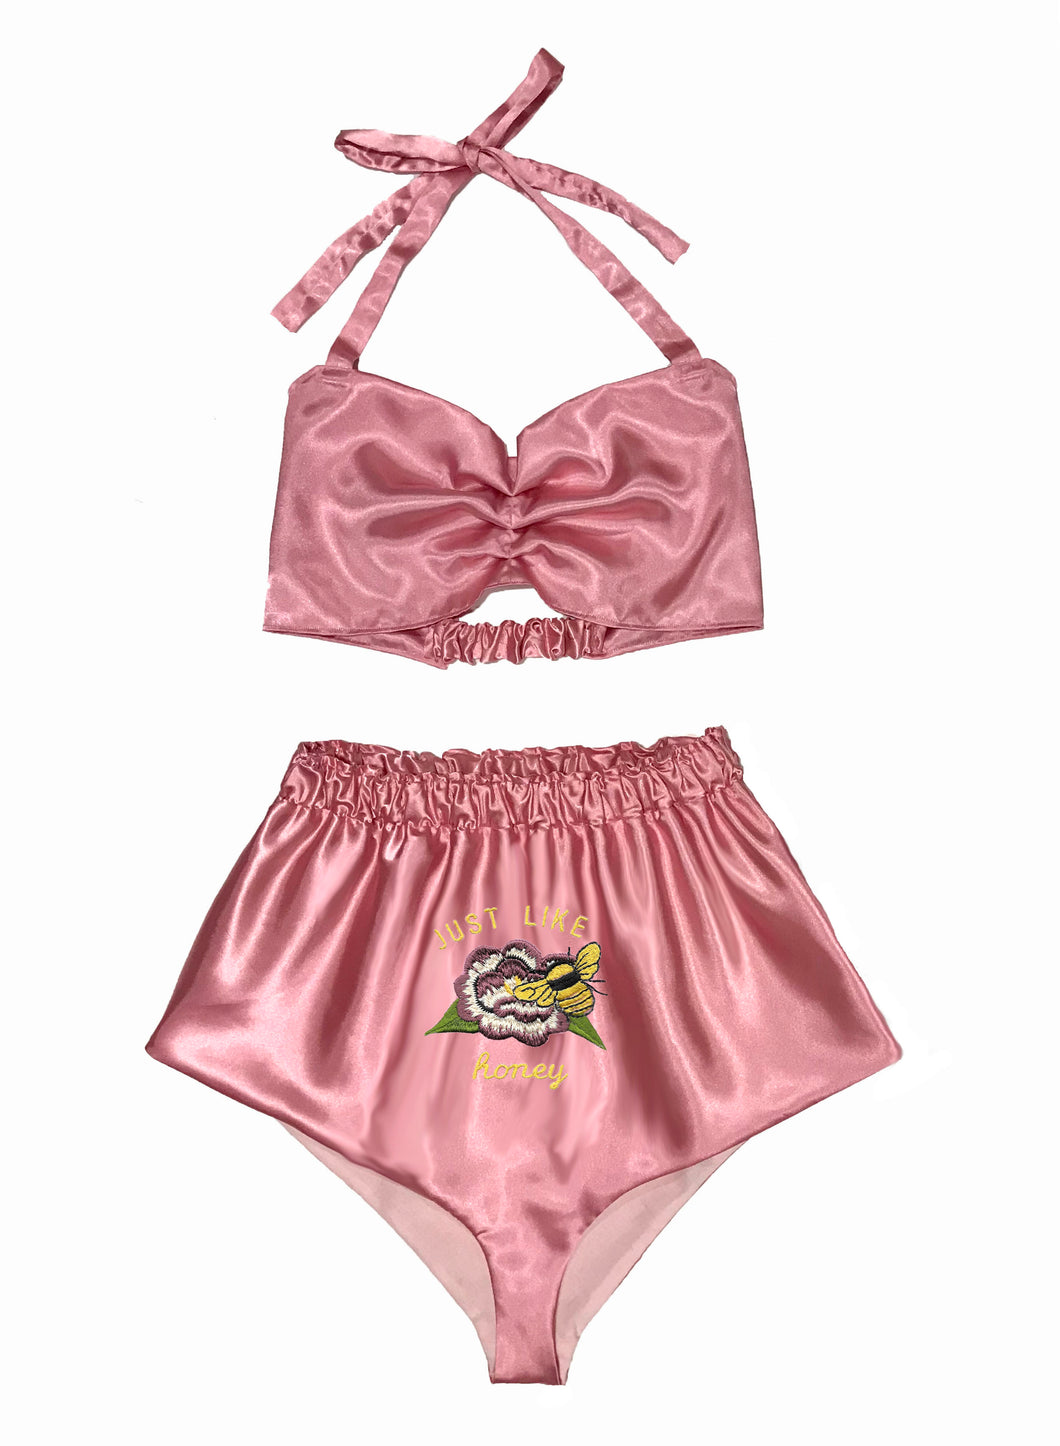 Honeybee Embroidered Satin Set